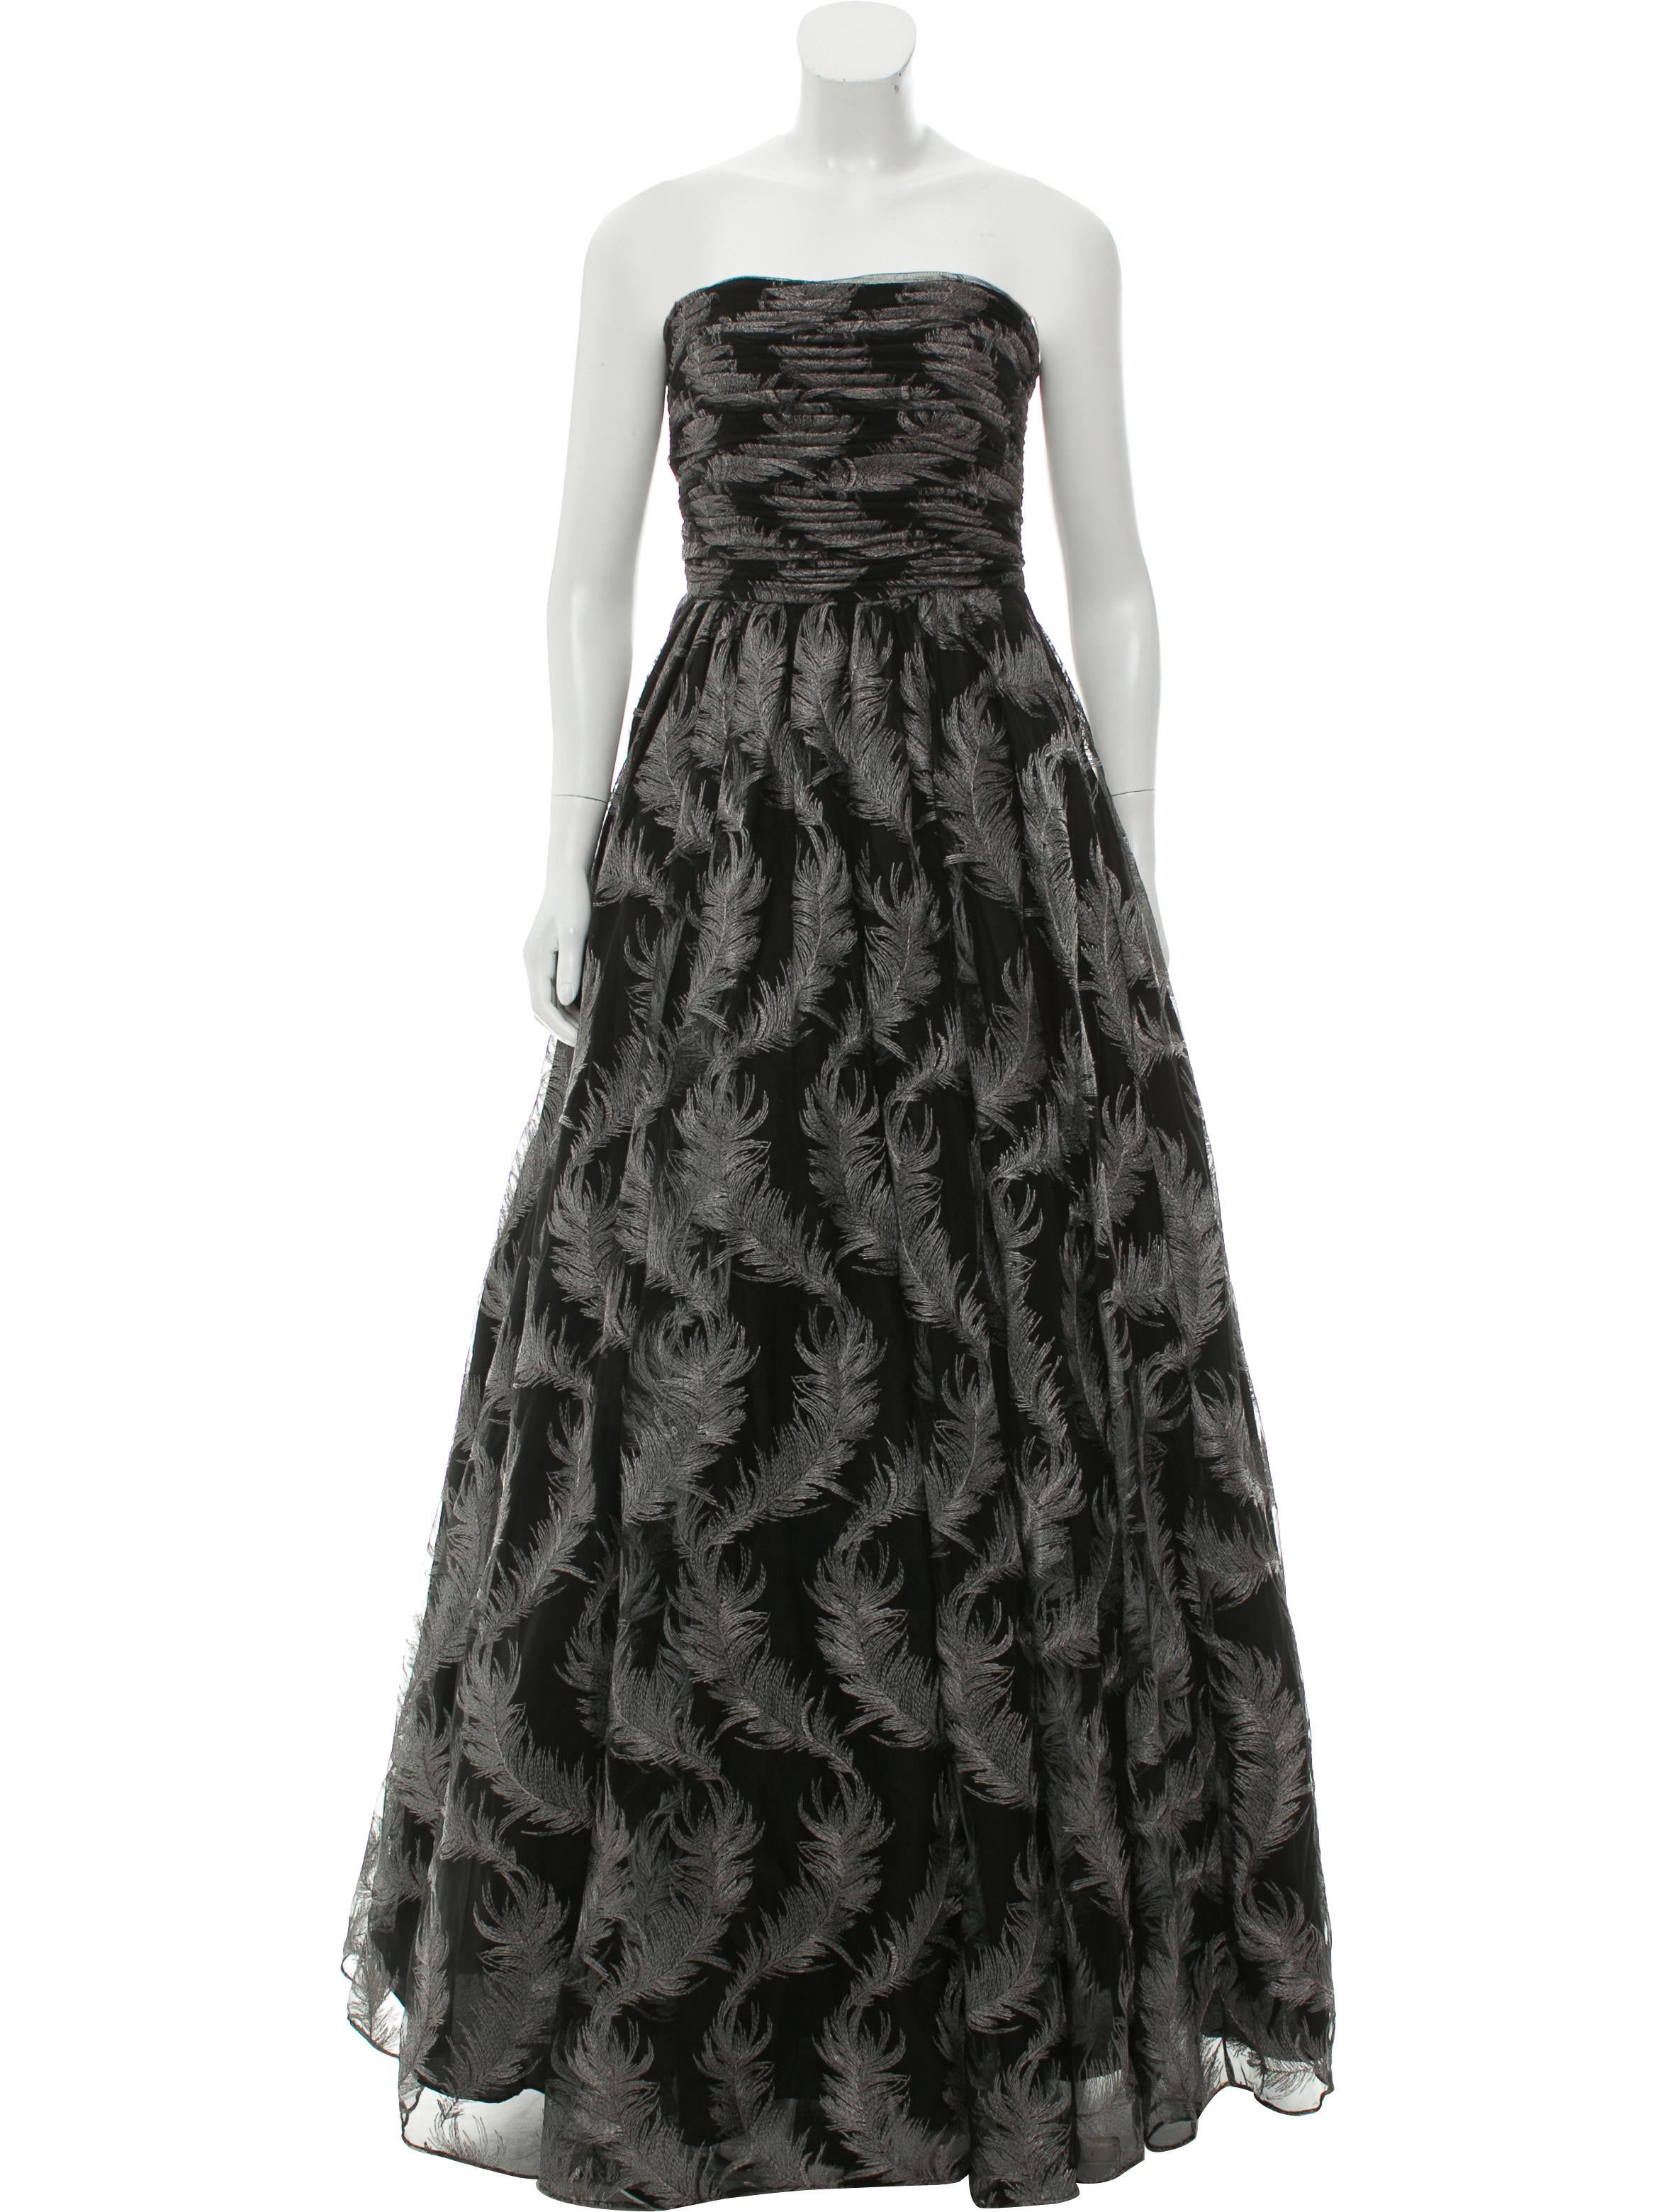 David Meister Strapless Evening Gown w/ Tags - Clothing - WDM26482 ...